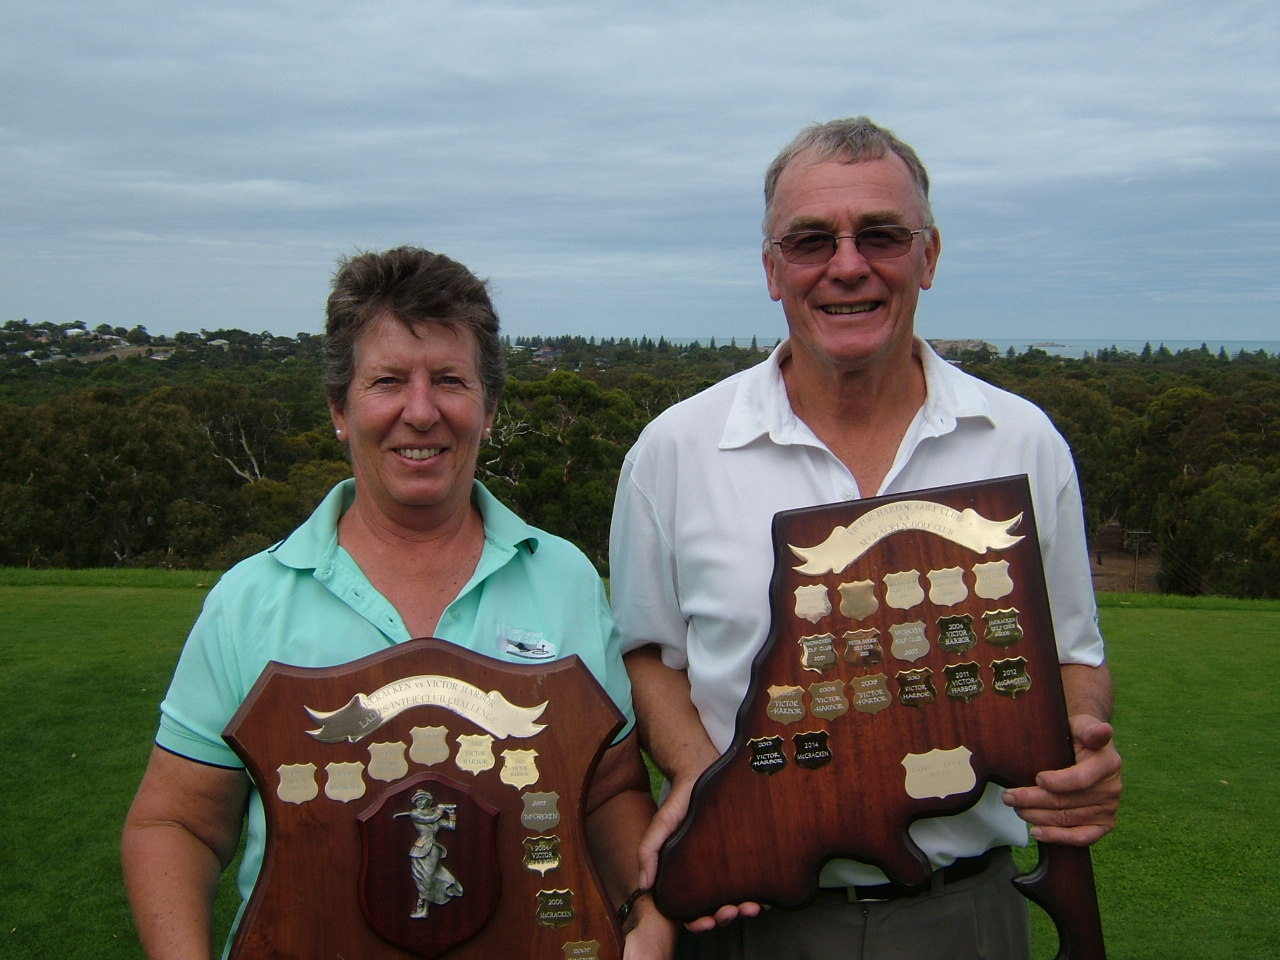 Victor Harbor Ladies Captain (Libby Bancroft) and Victor Harbor Club Captain (Bruce WATKINS) standing on our Iconic Holes Hall of Fame 1st Tee holding the trophies won.